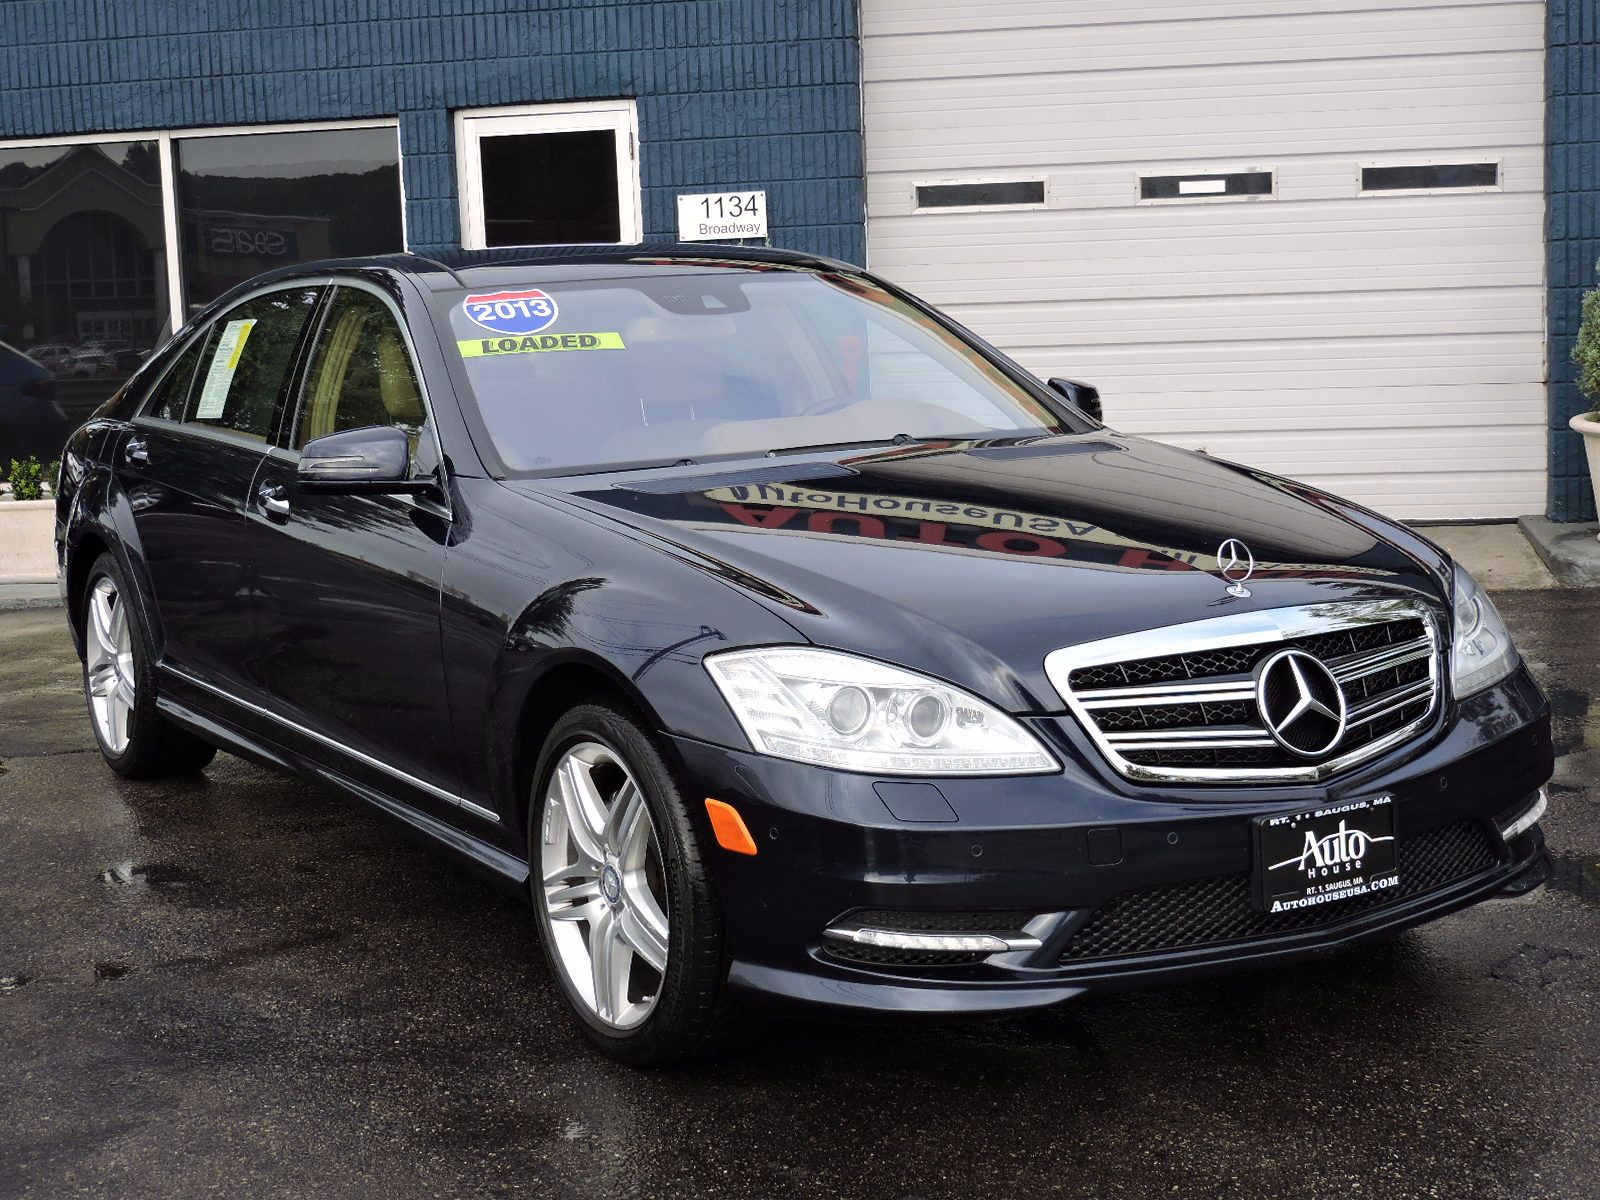 2013 Mercedes-Benz S-Class - 4Matic - All Wheel Drive - Navigation